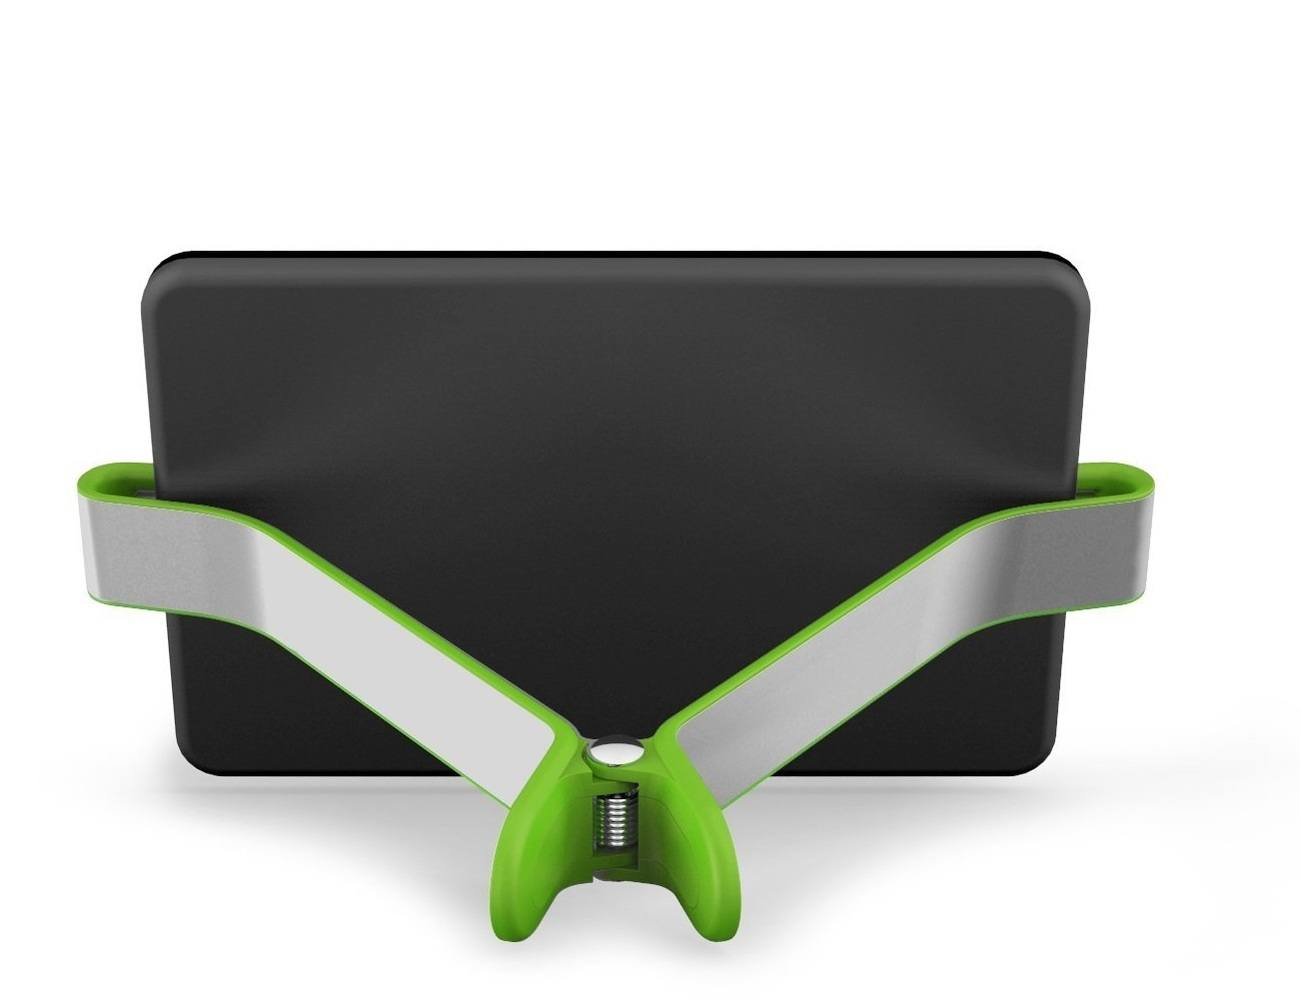 Felix TwoHands Tablet Travel Stand